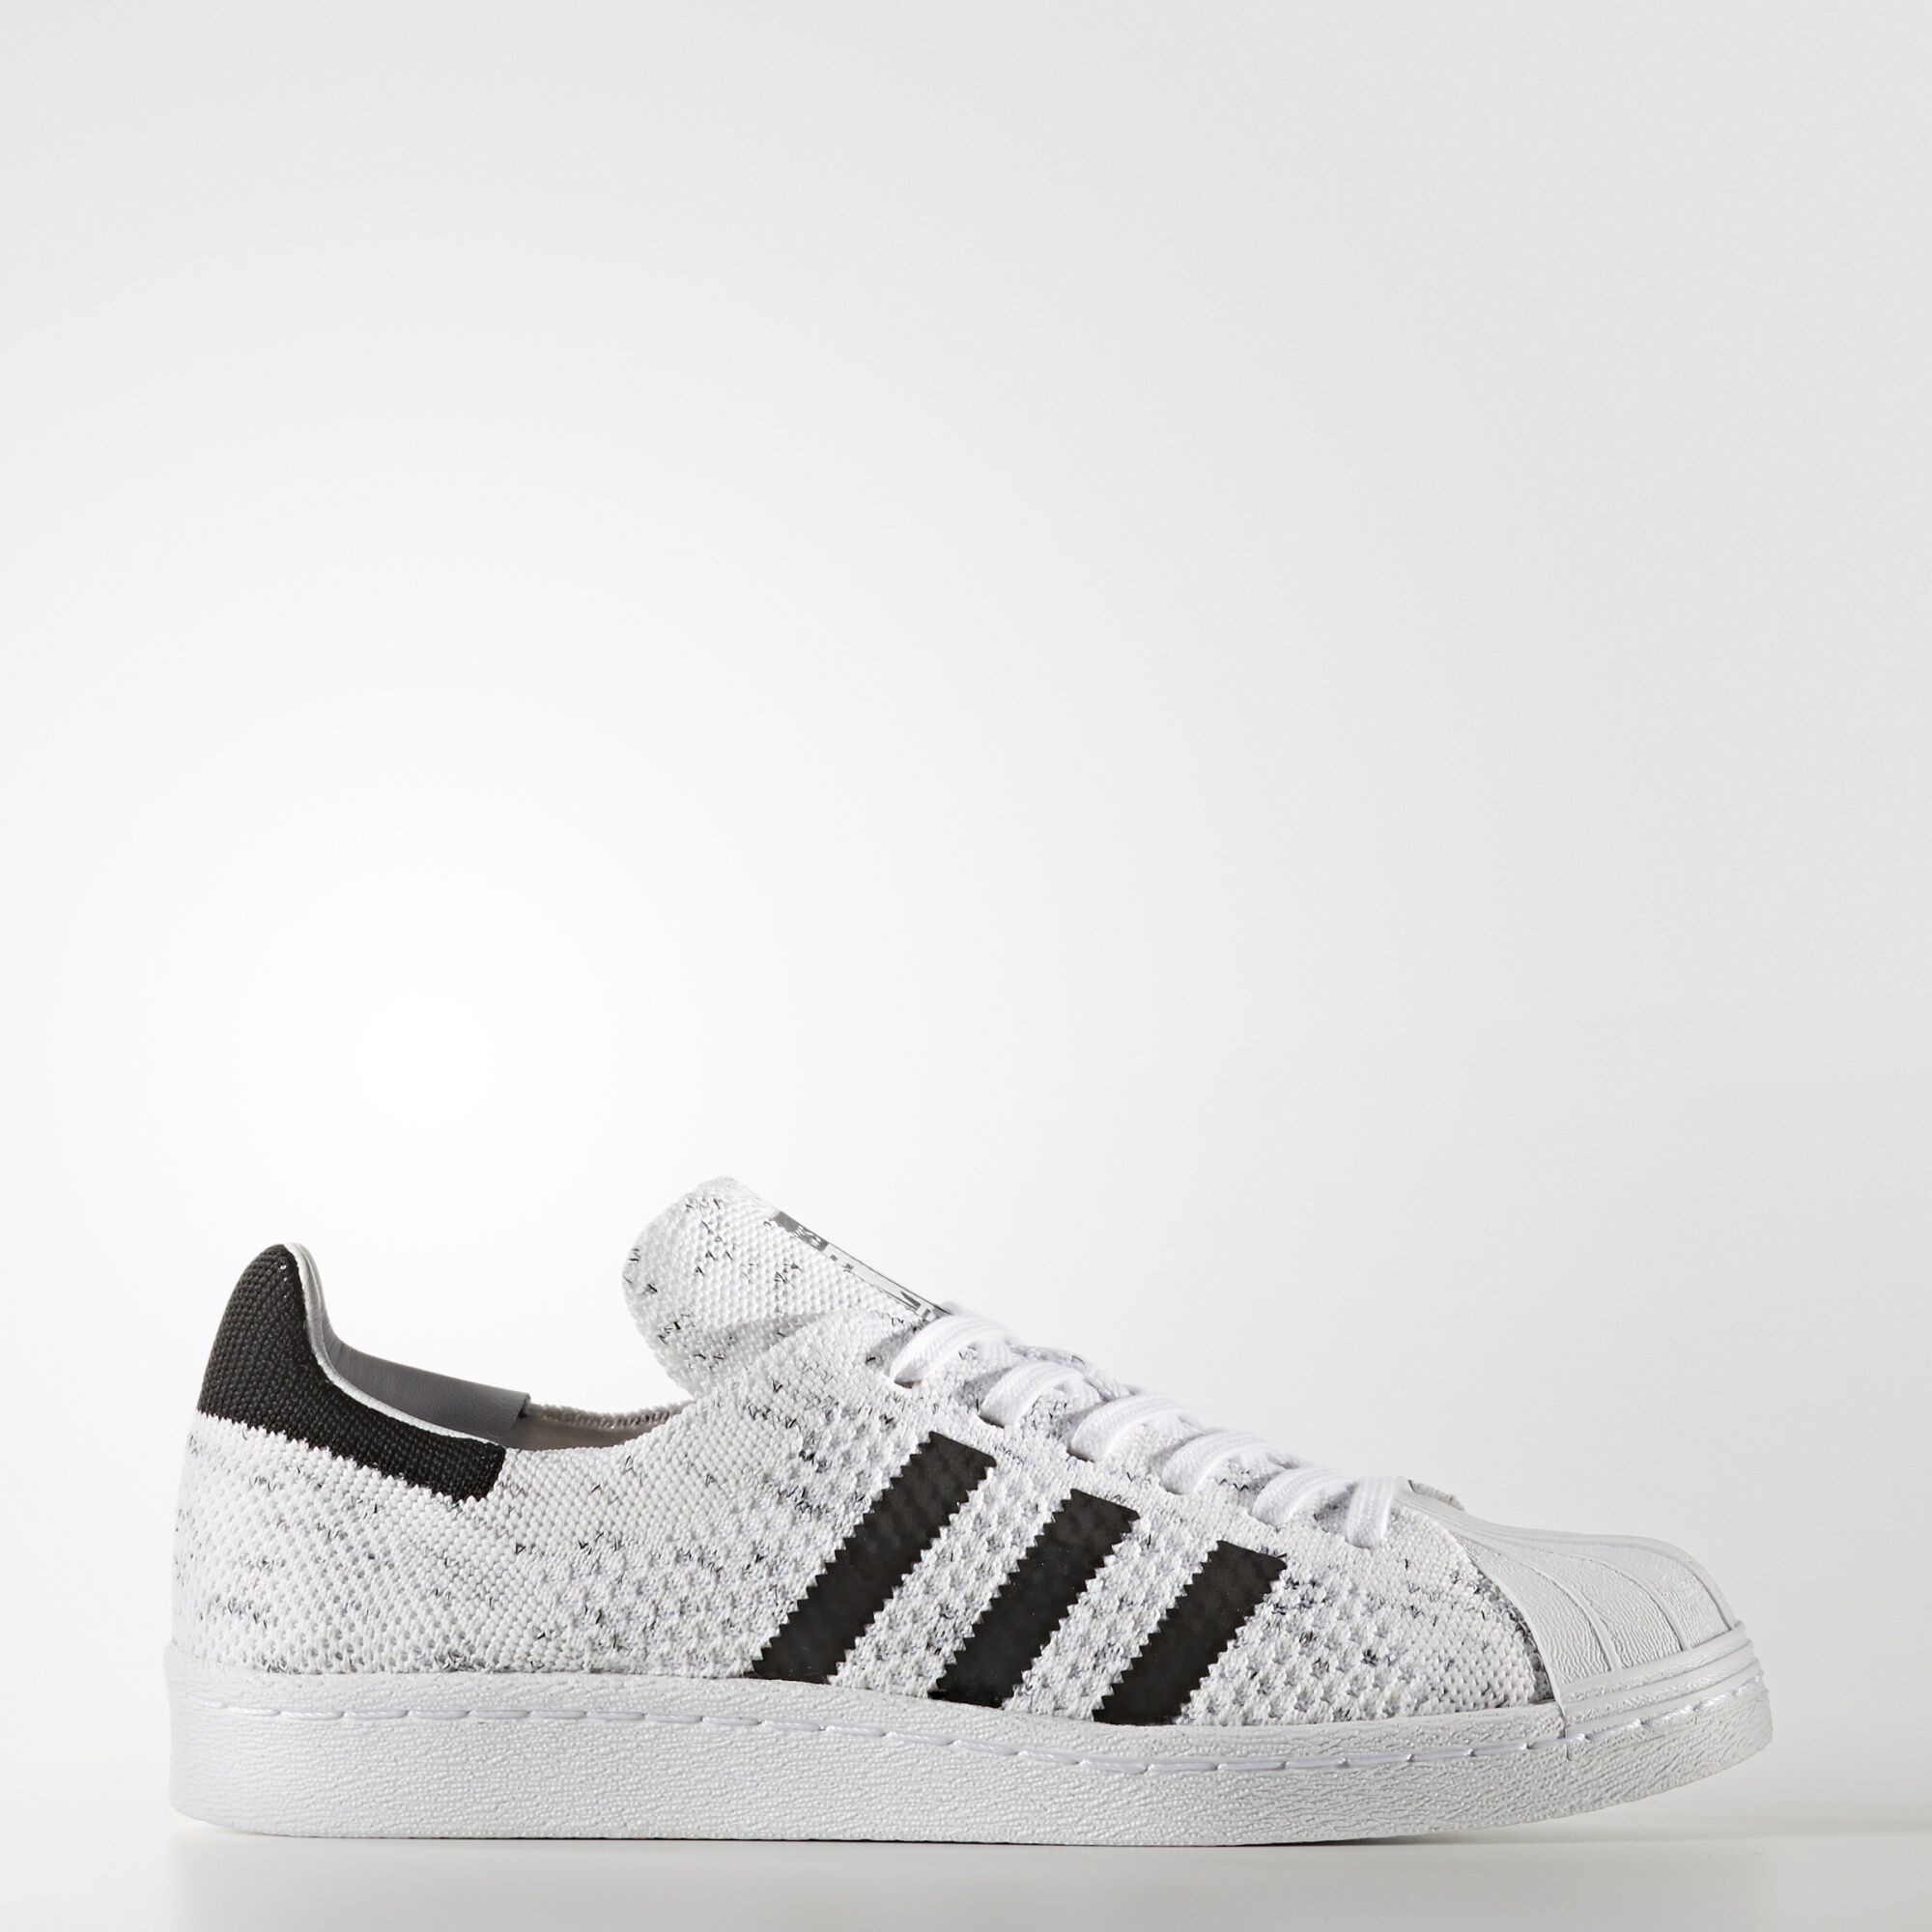 Adidas Superstar Unisex Graffiti Shoes Discount Product Red